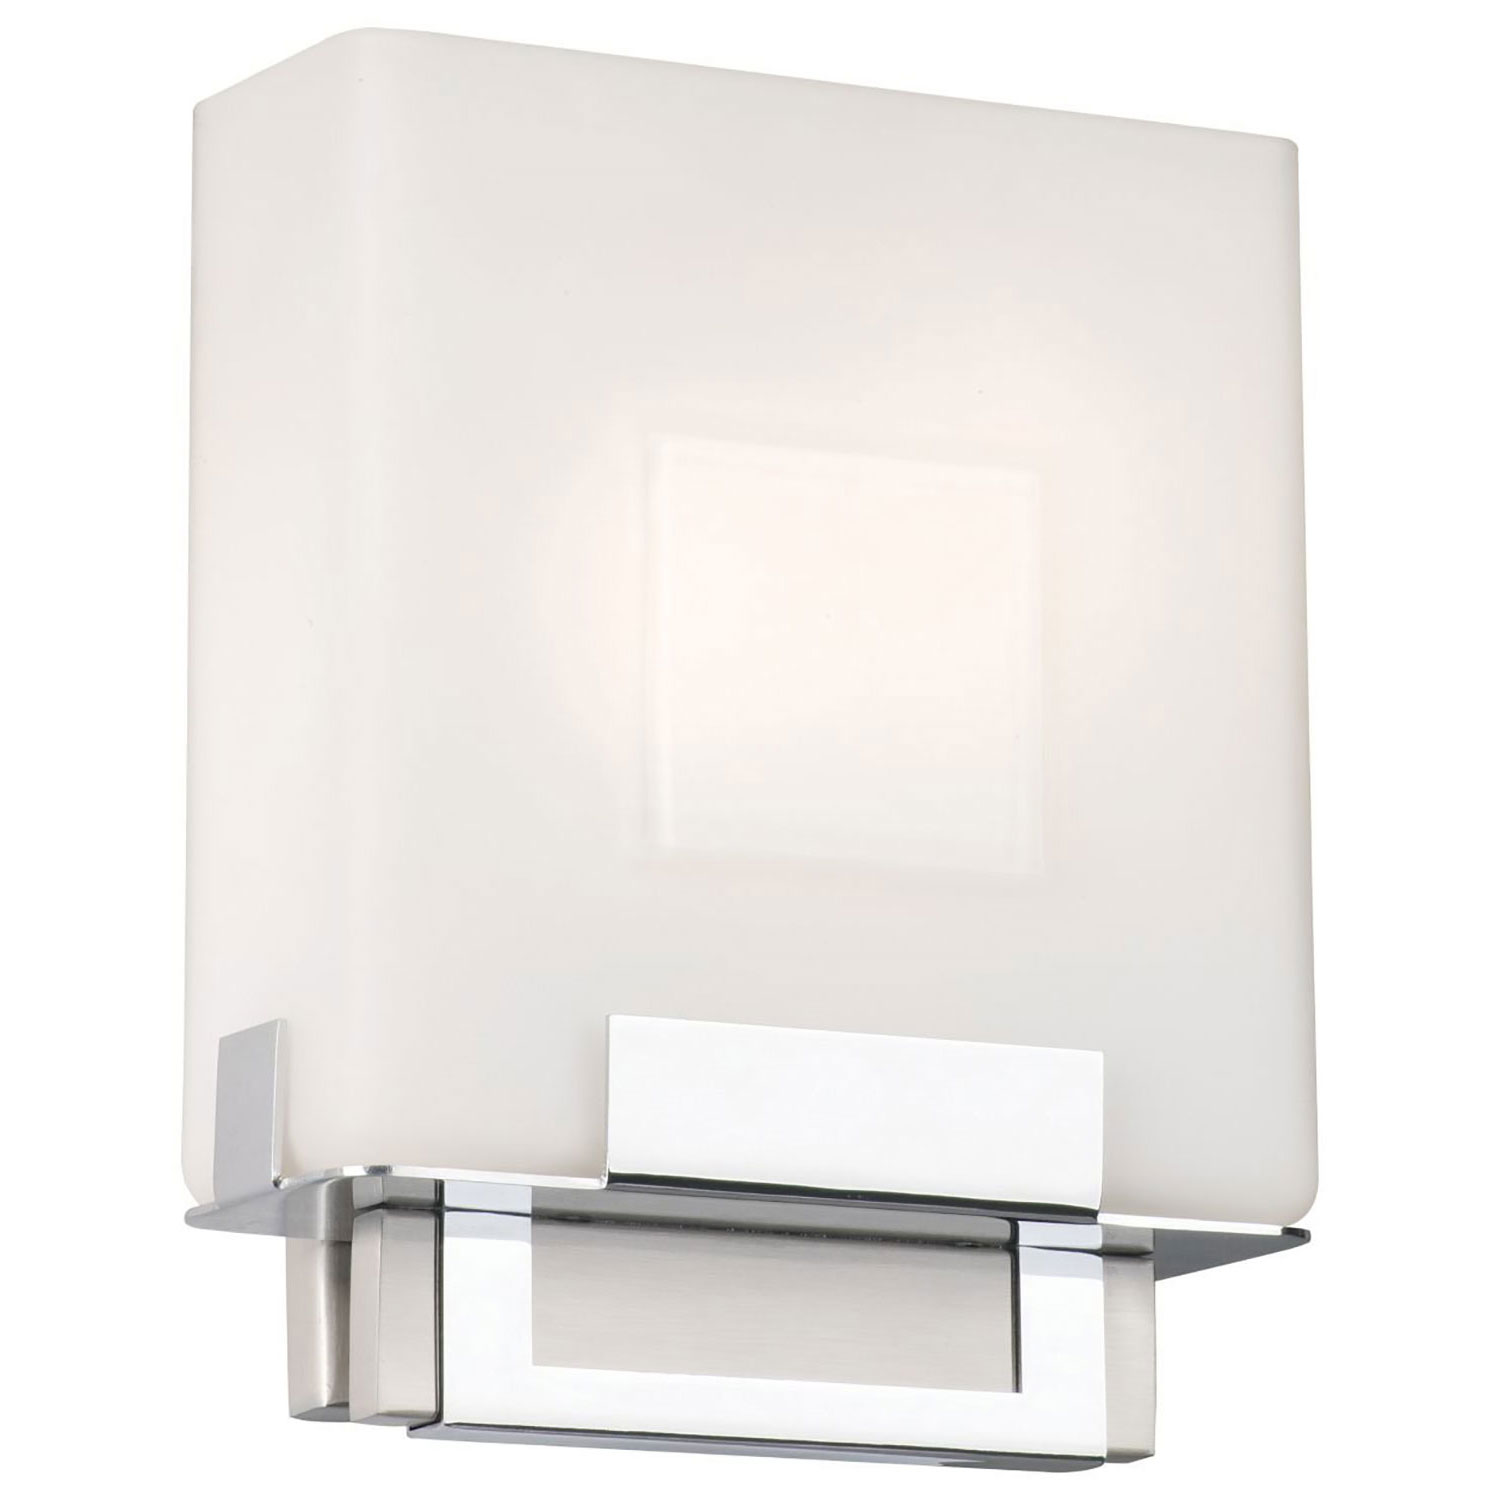 Phillips Forecast Lighting FE Square Bathroom Sconce Light - Square bathroom sconce